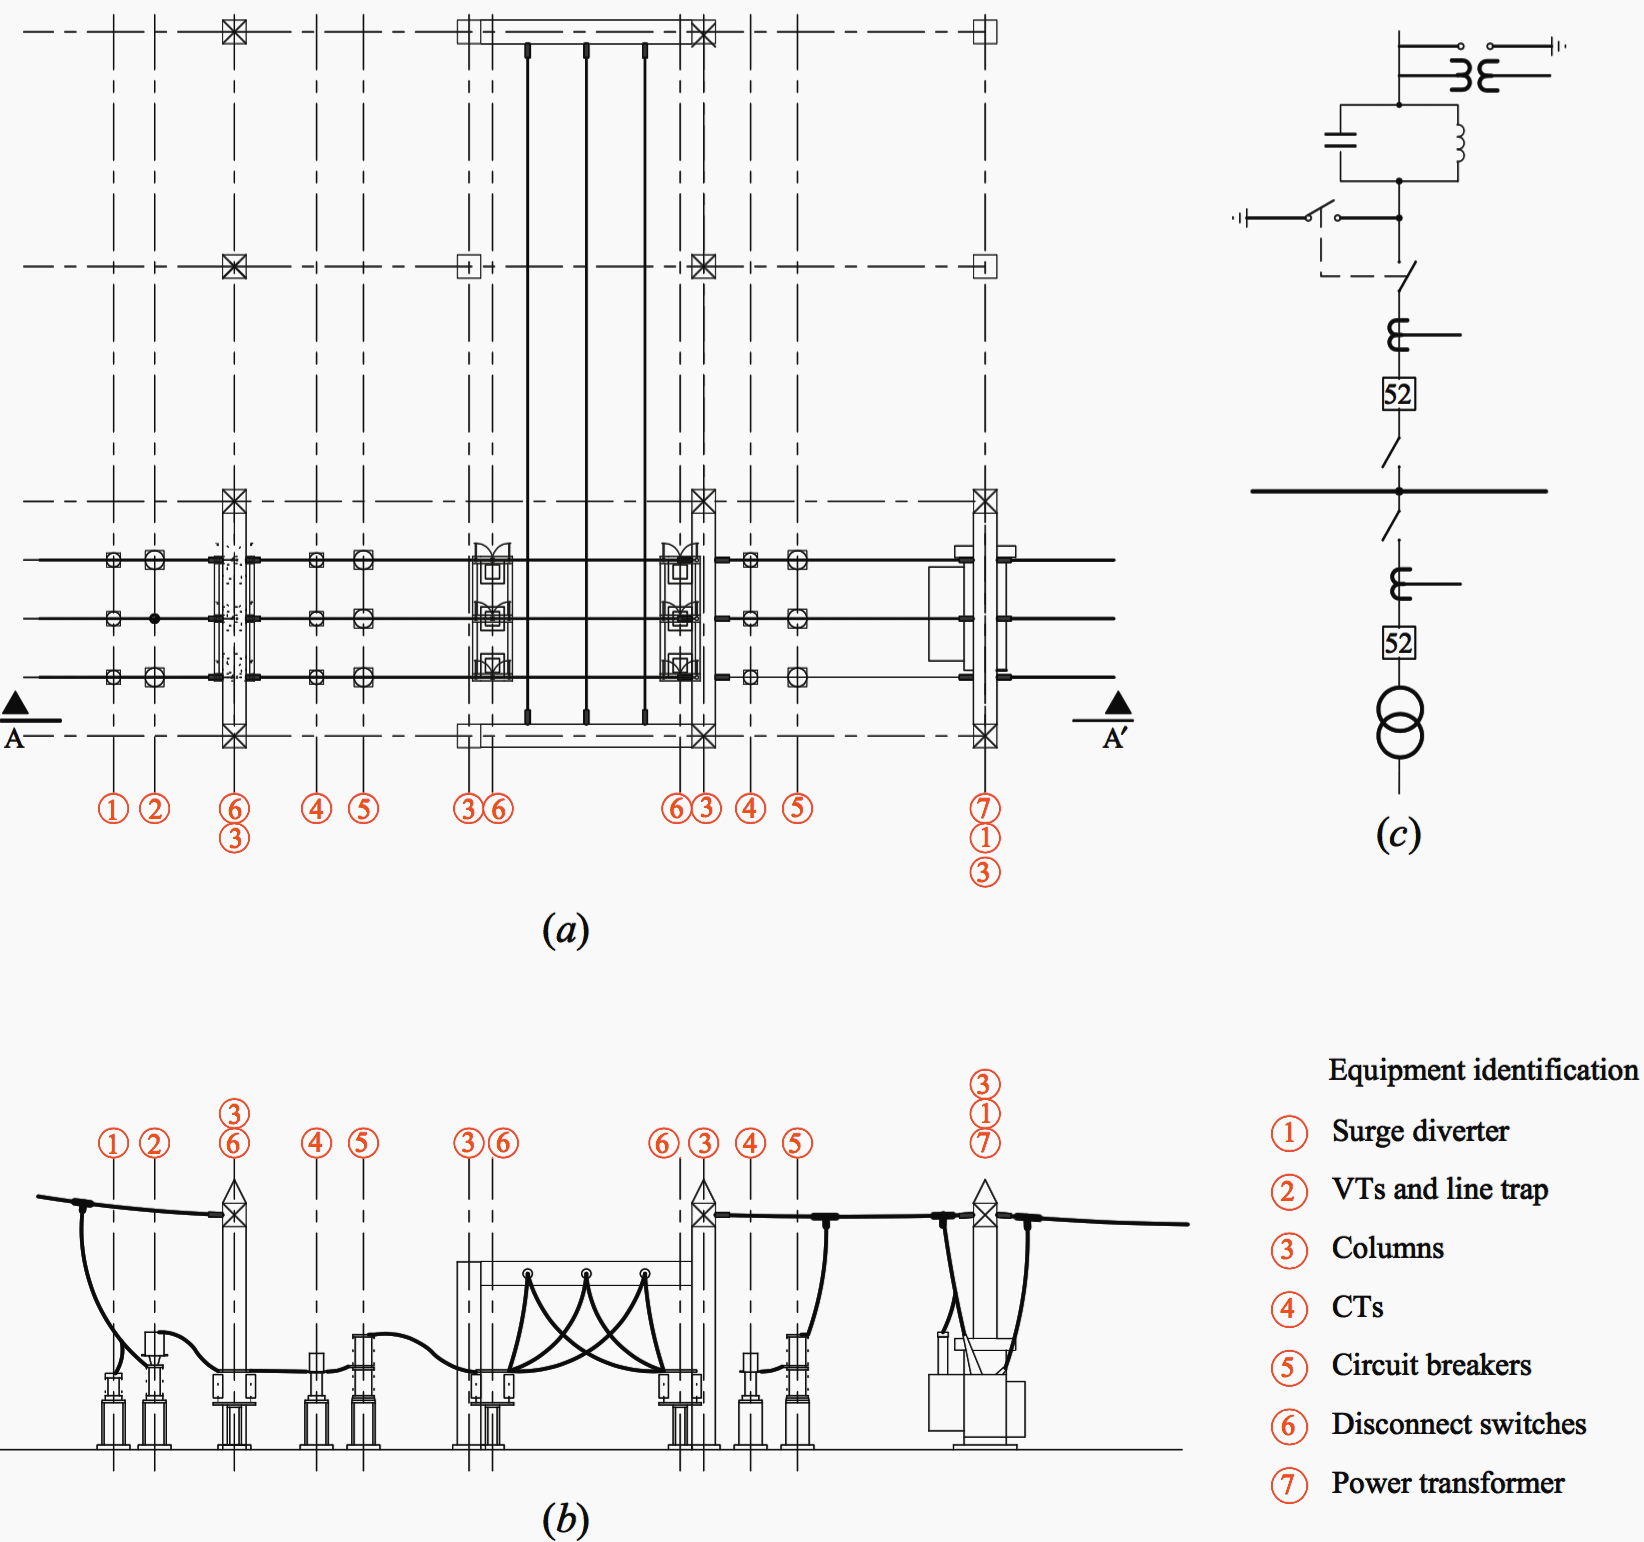 hight resolution of general layout for two 115 kv bays a general layout